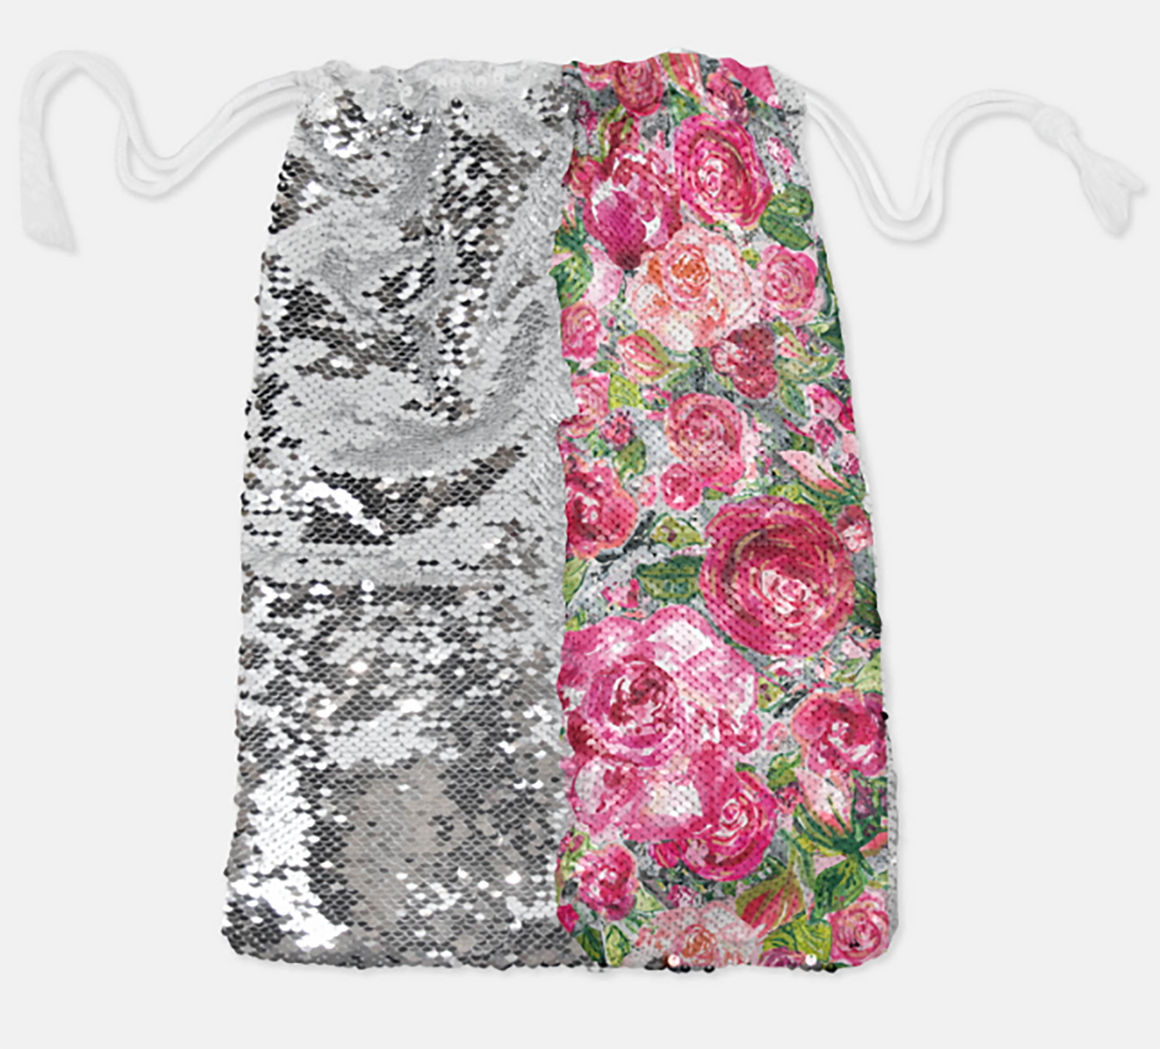 DRAWSTRING BAG - ROSE'S COTTAGE / SILVER SEQUINS - Dreams After All